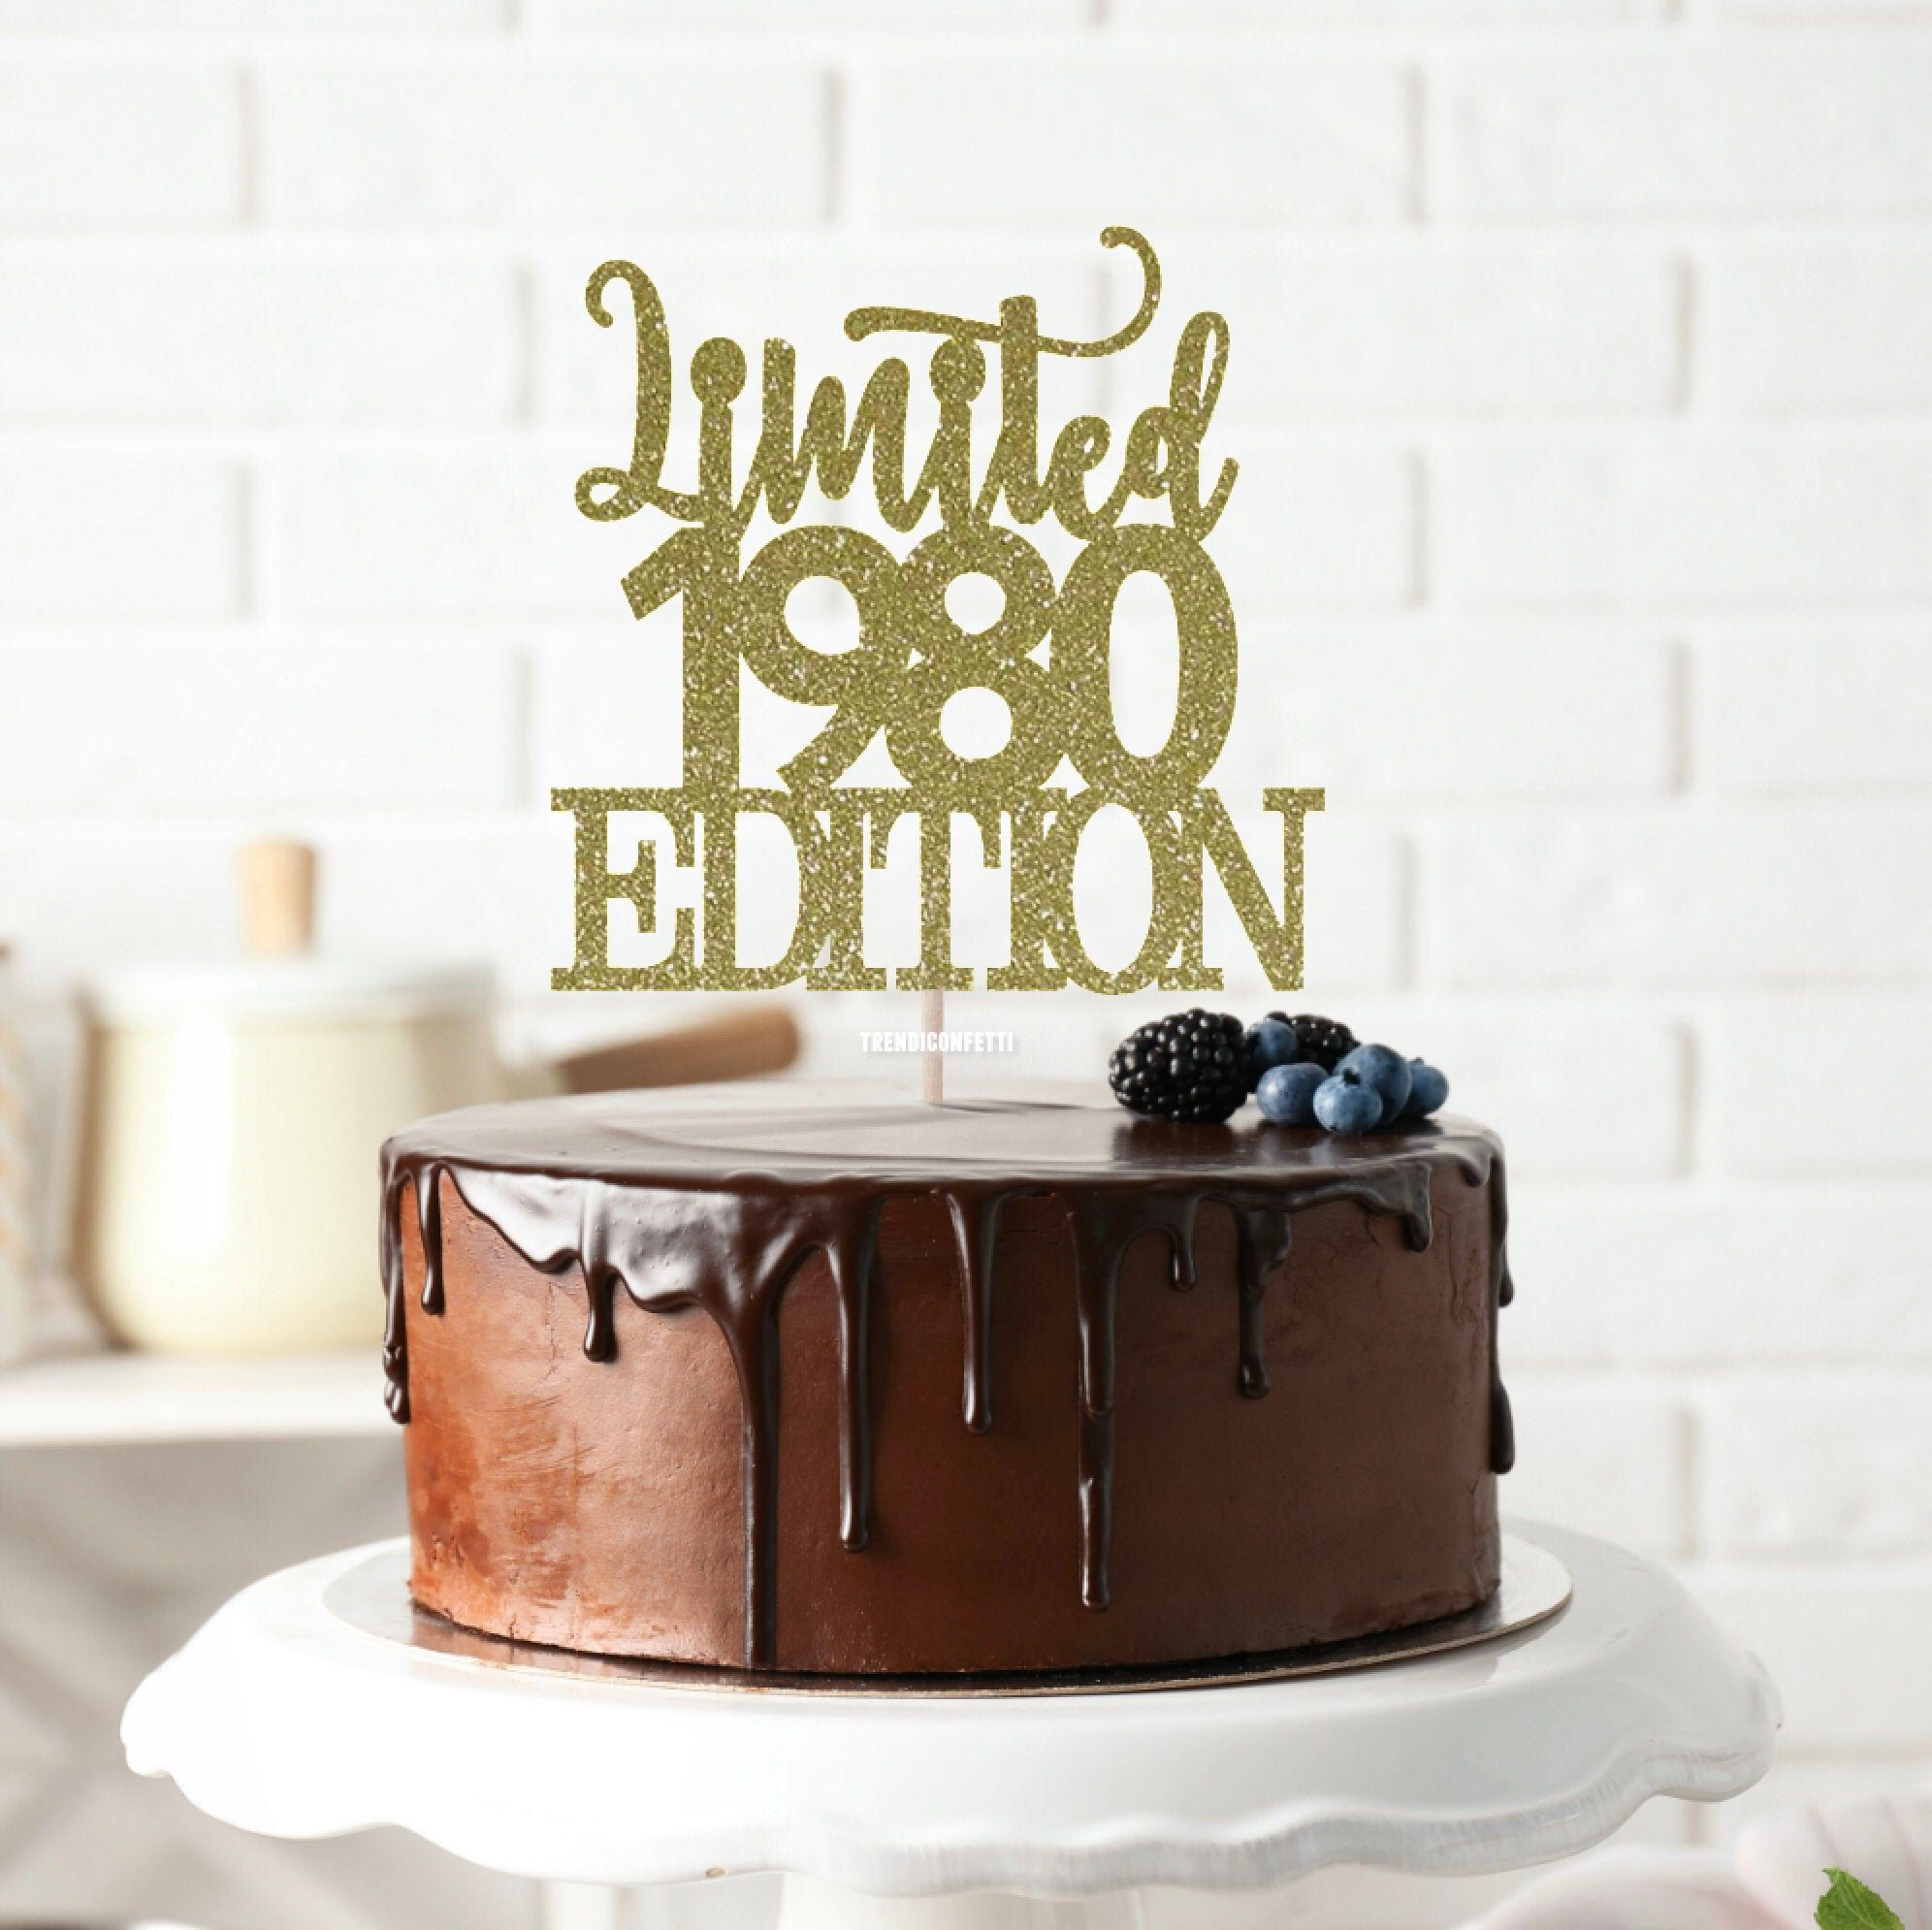 Limited 1980 Edition Cake Topper 40 Years Loved Cake Topper 40th